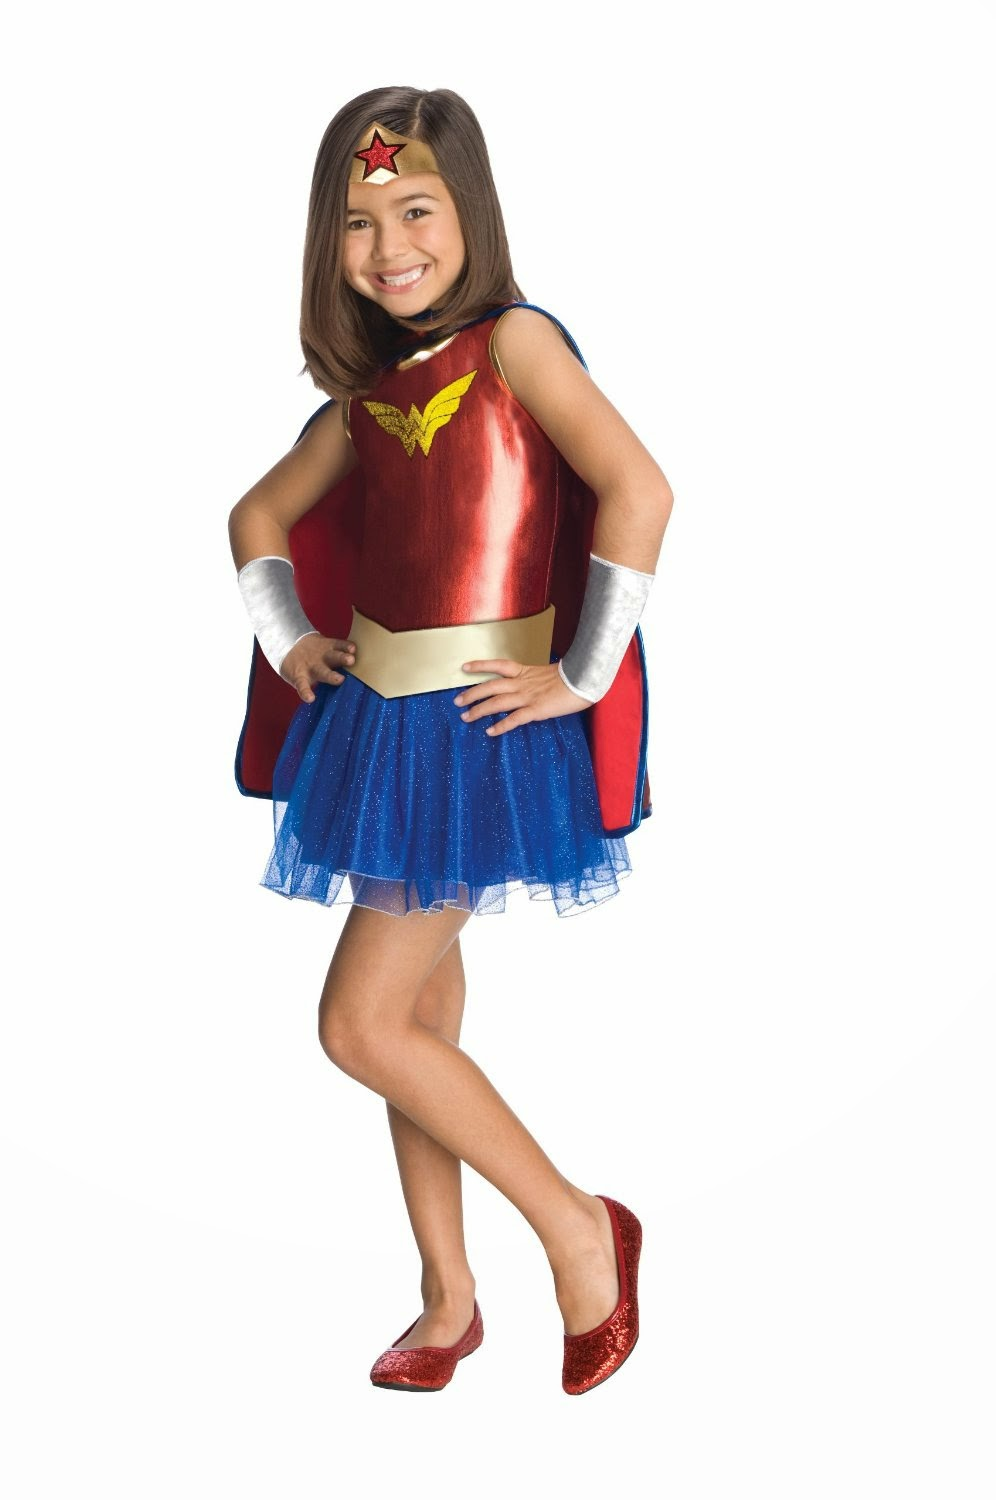 Cute Wonder Woman Costume for Girls